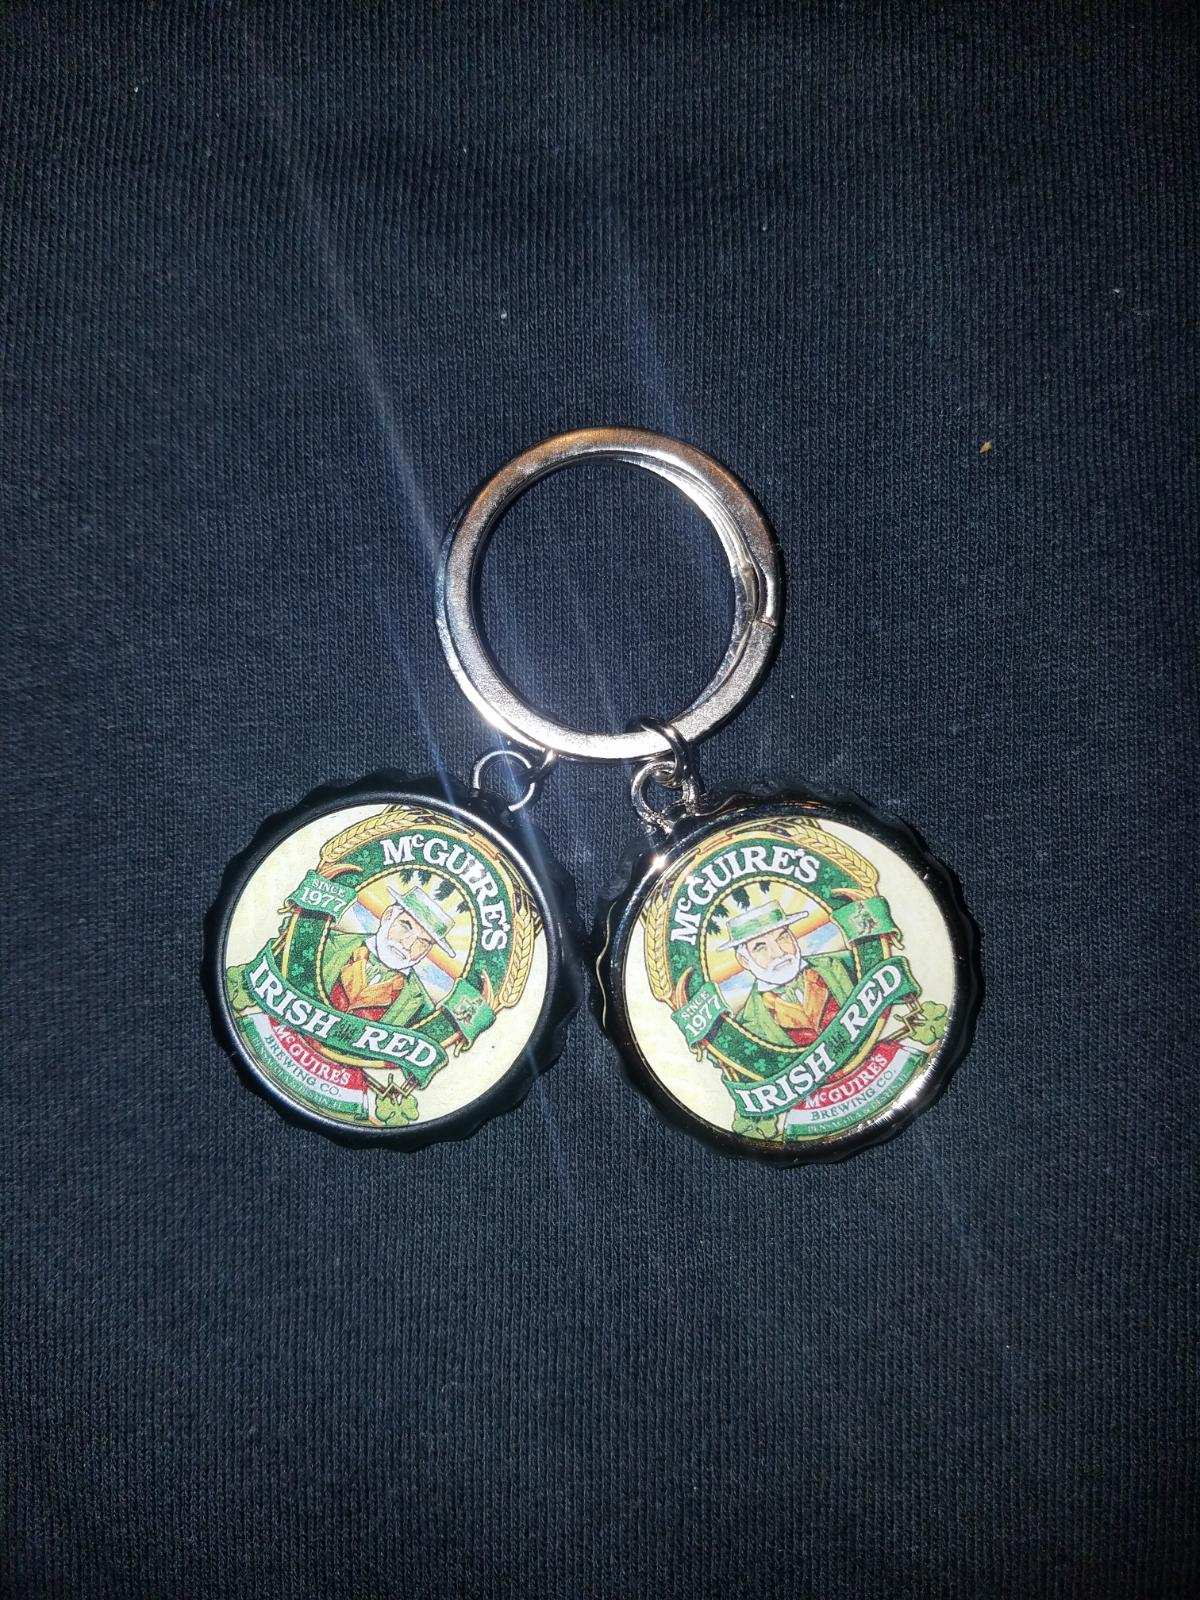 Irish Red Bottle Opener Keychain